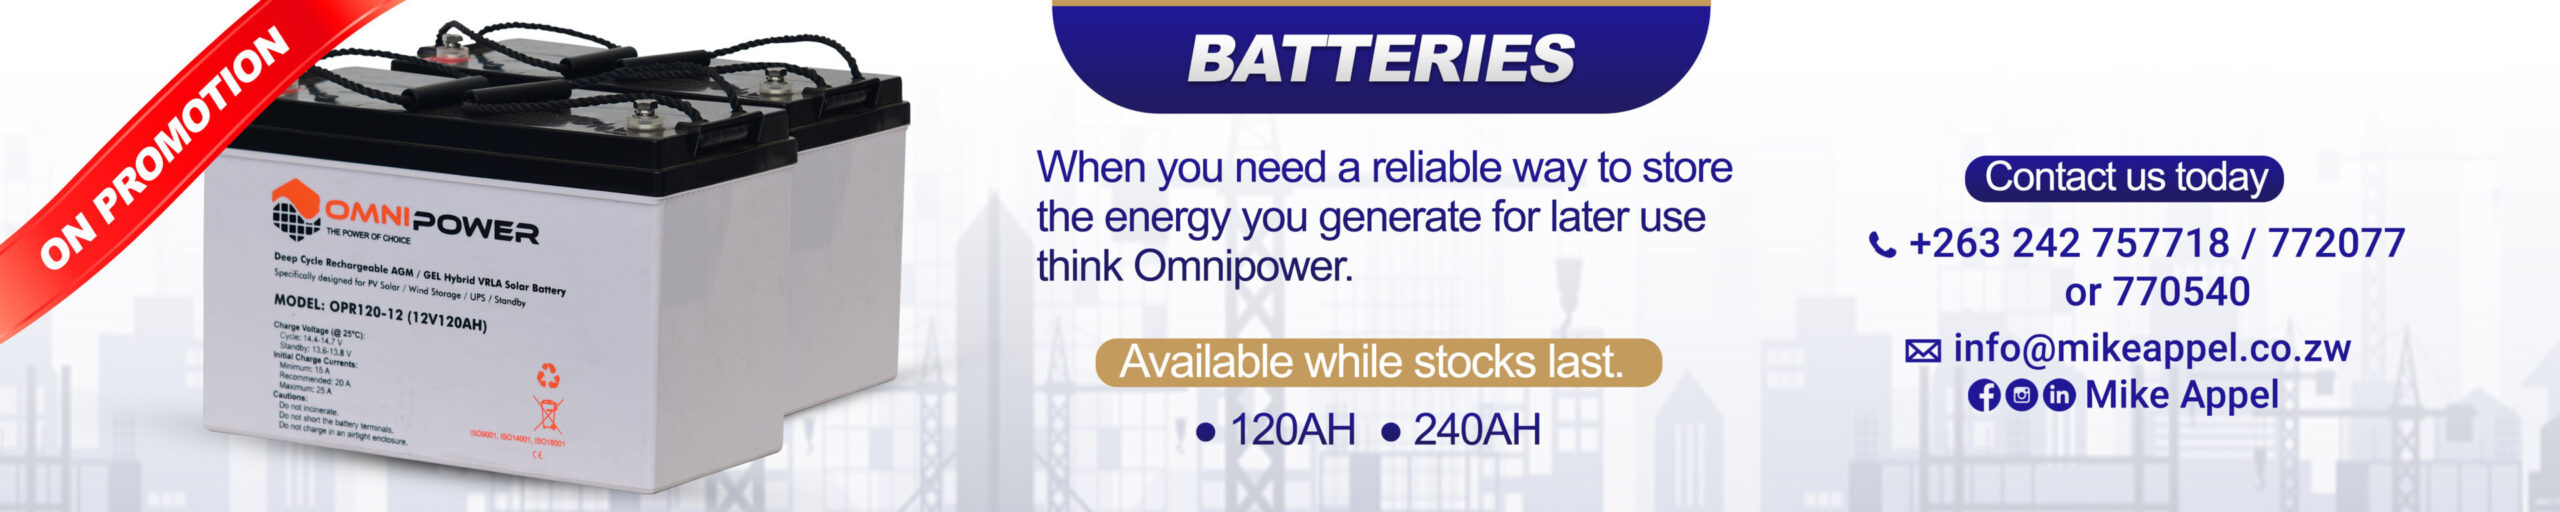 Batteries Mike Appel Website-1 (small)